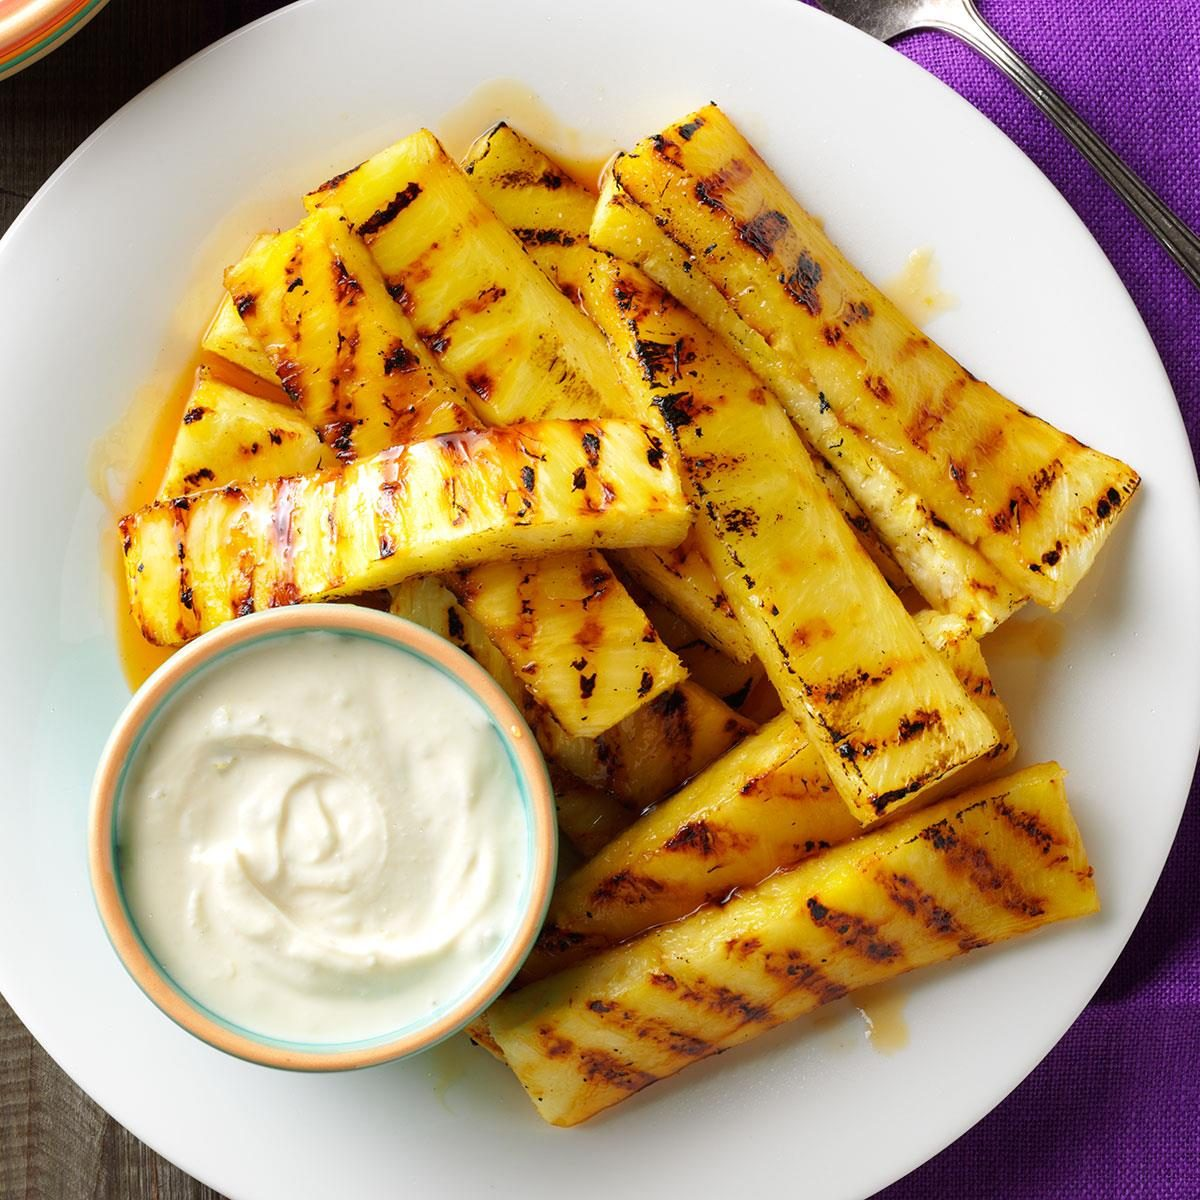 Grilled Pineapple with Lime Dip